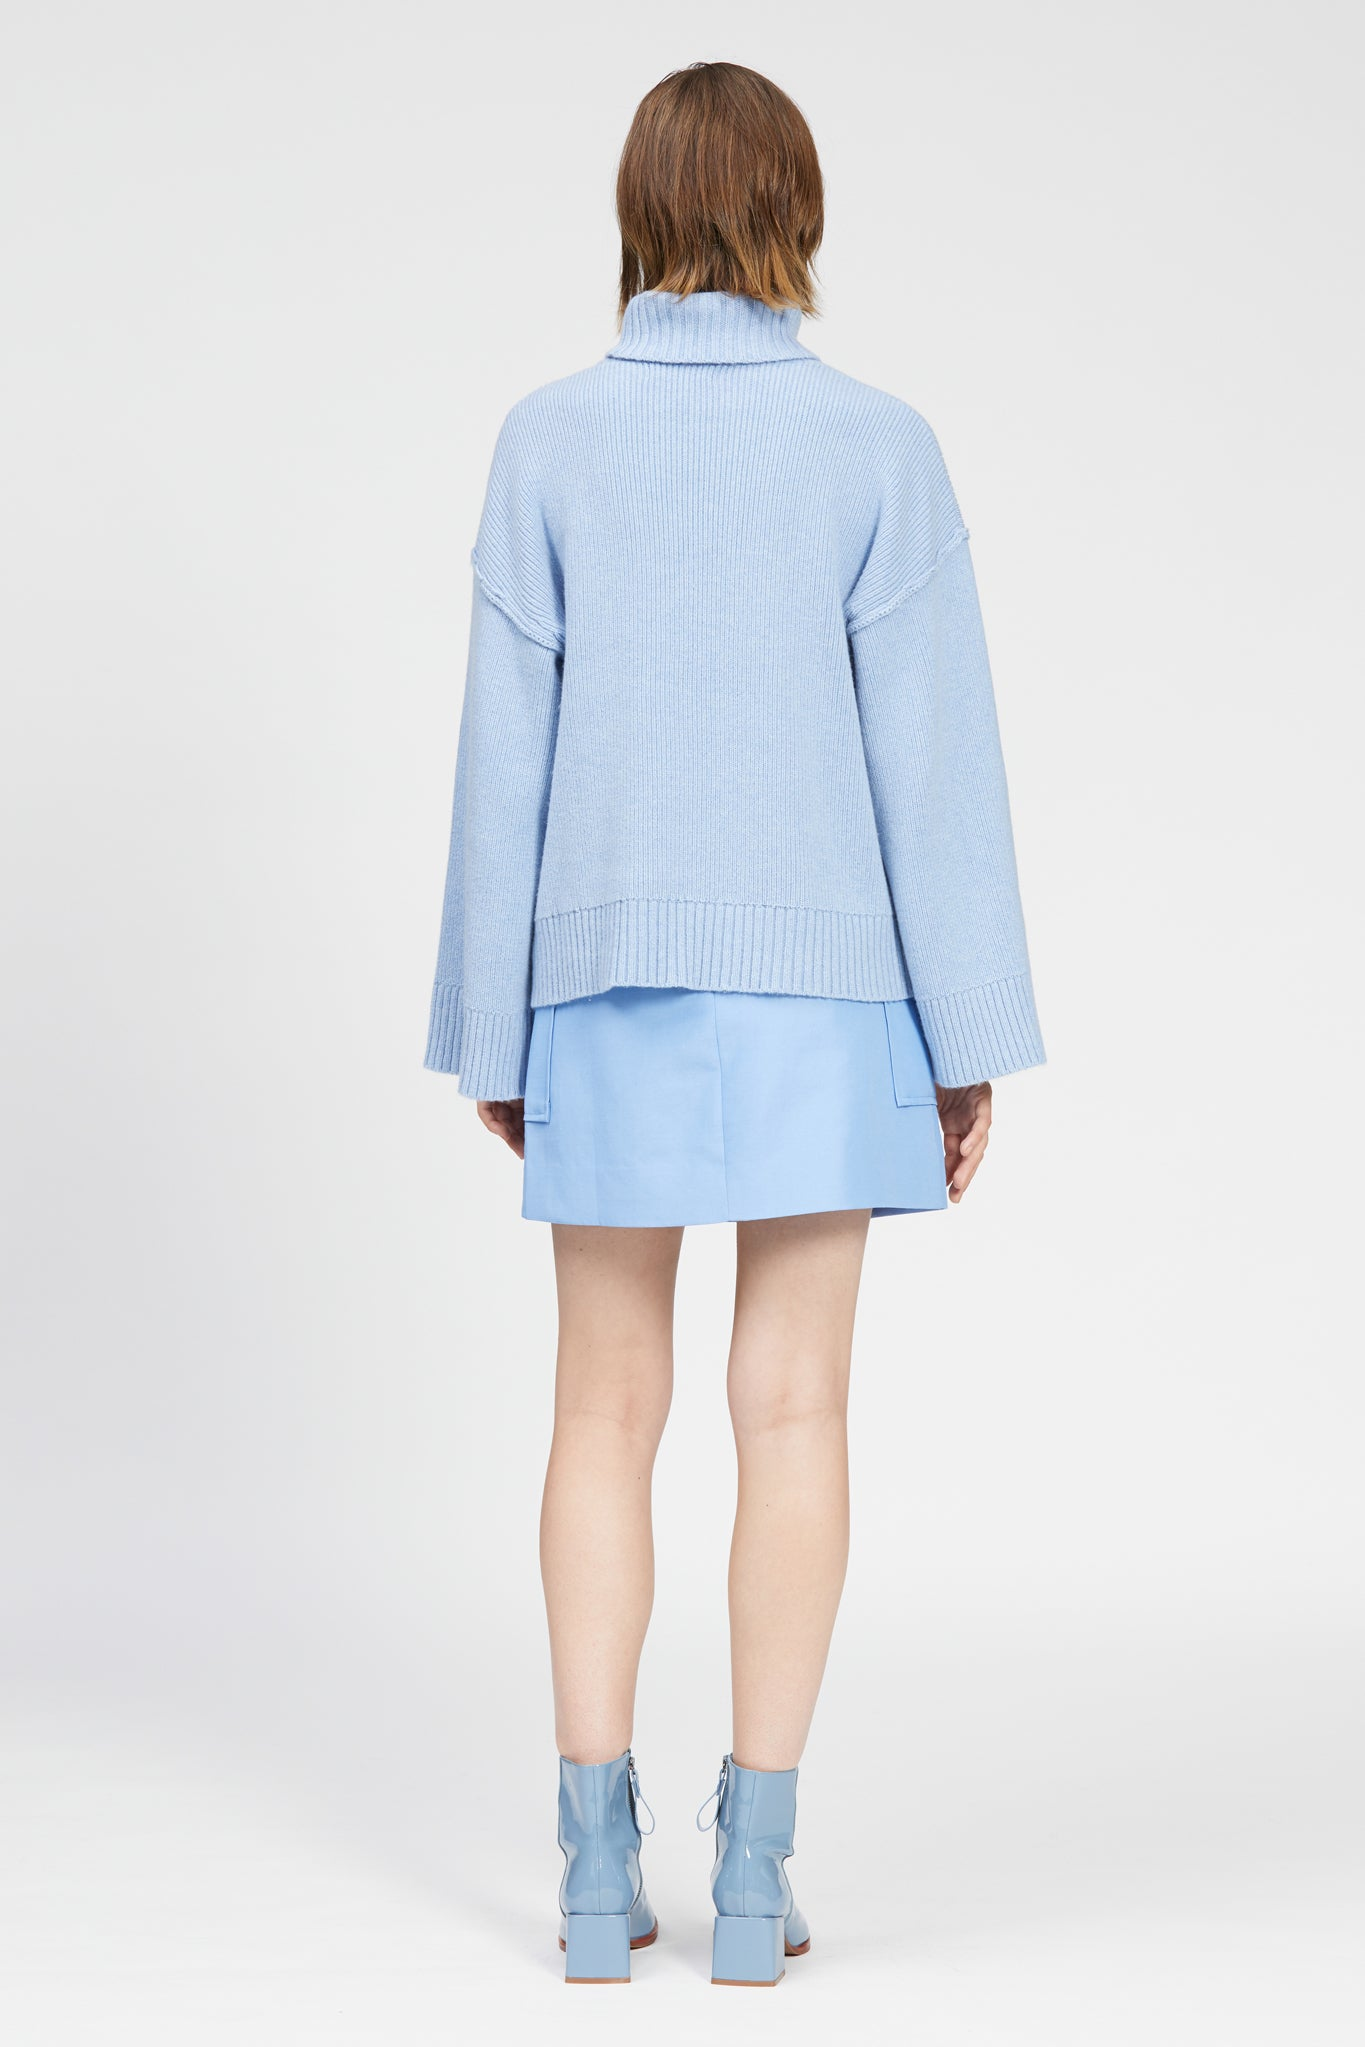 giavo jumper light blue